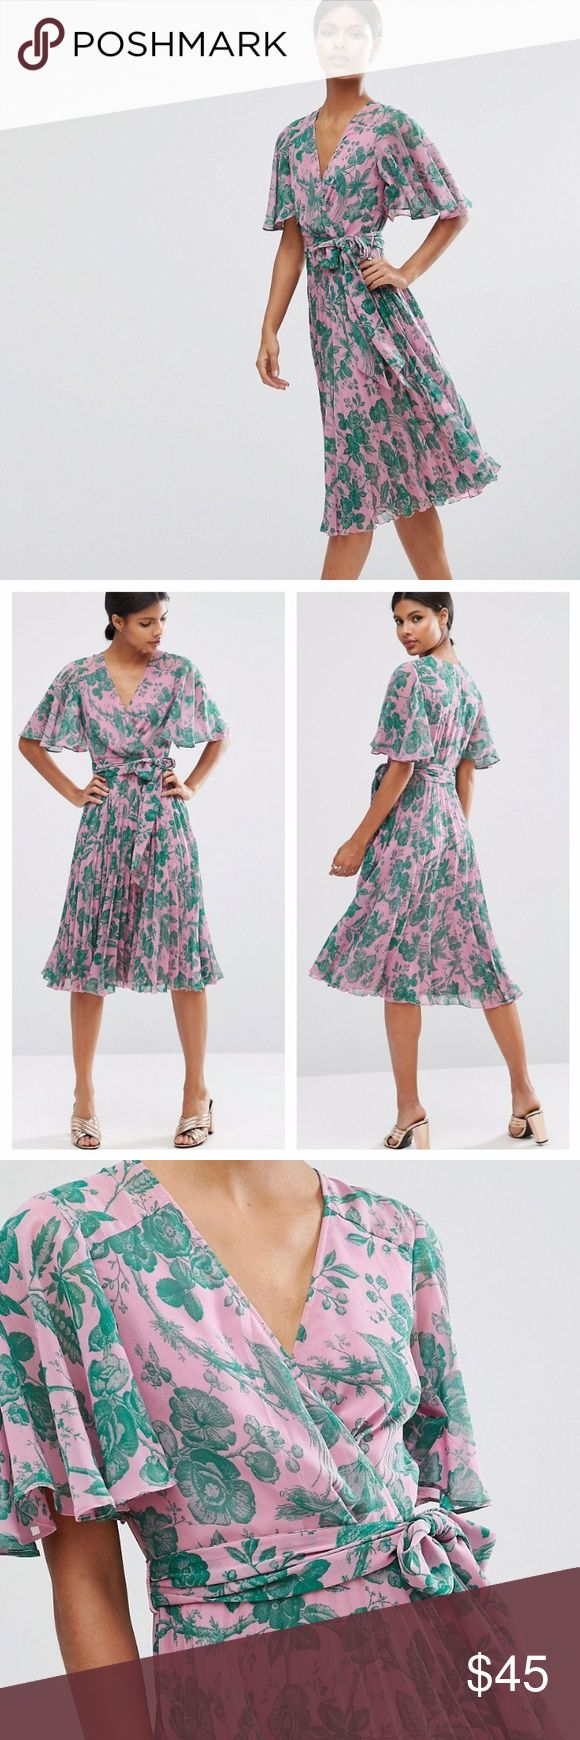 """ASOS Spring Print Pleated Midi Dress Beautiful ASOS Collection Dress. Lined woven fabric. V-neckline, wrap front, wide cut sleeves. Tie waist, knife pleat skirt. Fabric: polyester. Like new, worn once, no flaws. All reasonable offers are welcome! Please make all offers through the offer button🤗 Measurements: bust: 16.5"""" (33) waist: 13.5"""" (27) length: 45"""" ASOS Dresses Midi"""